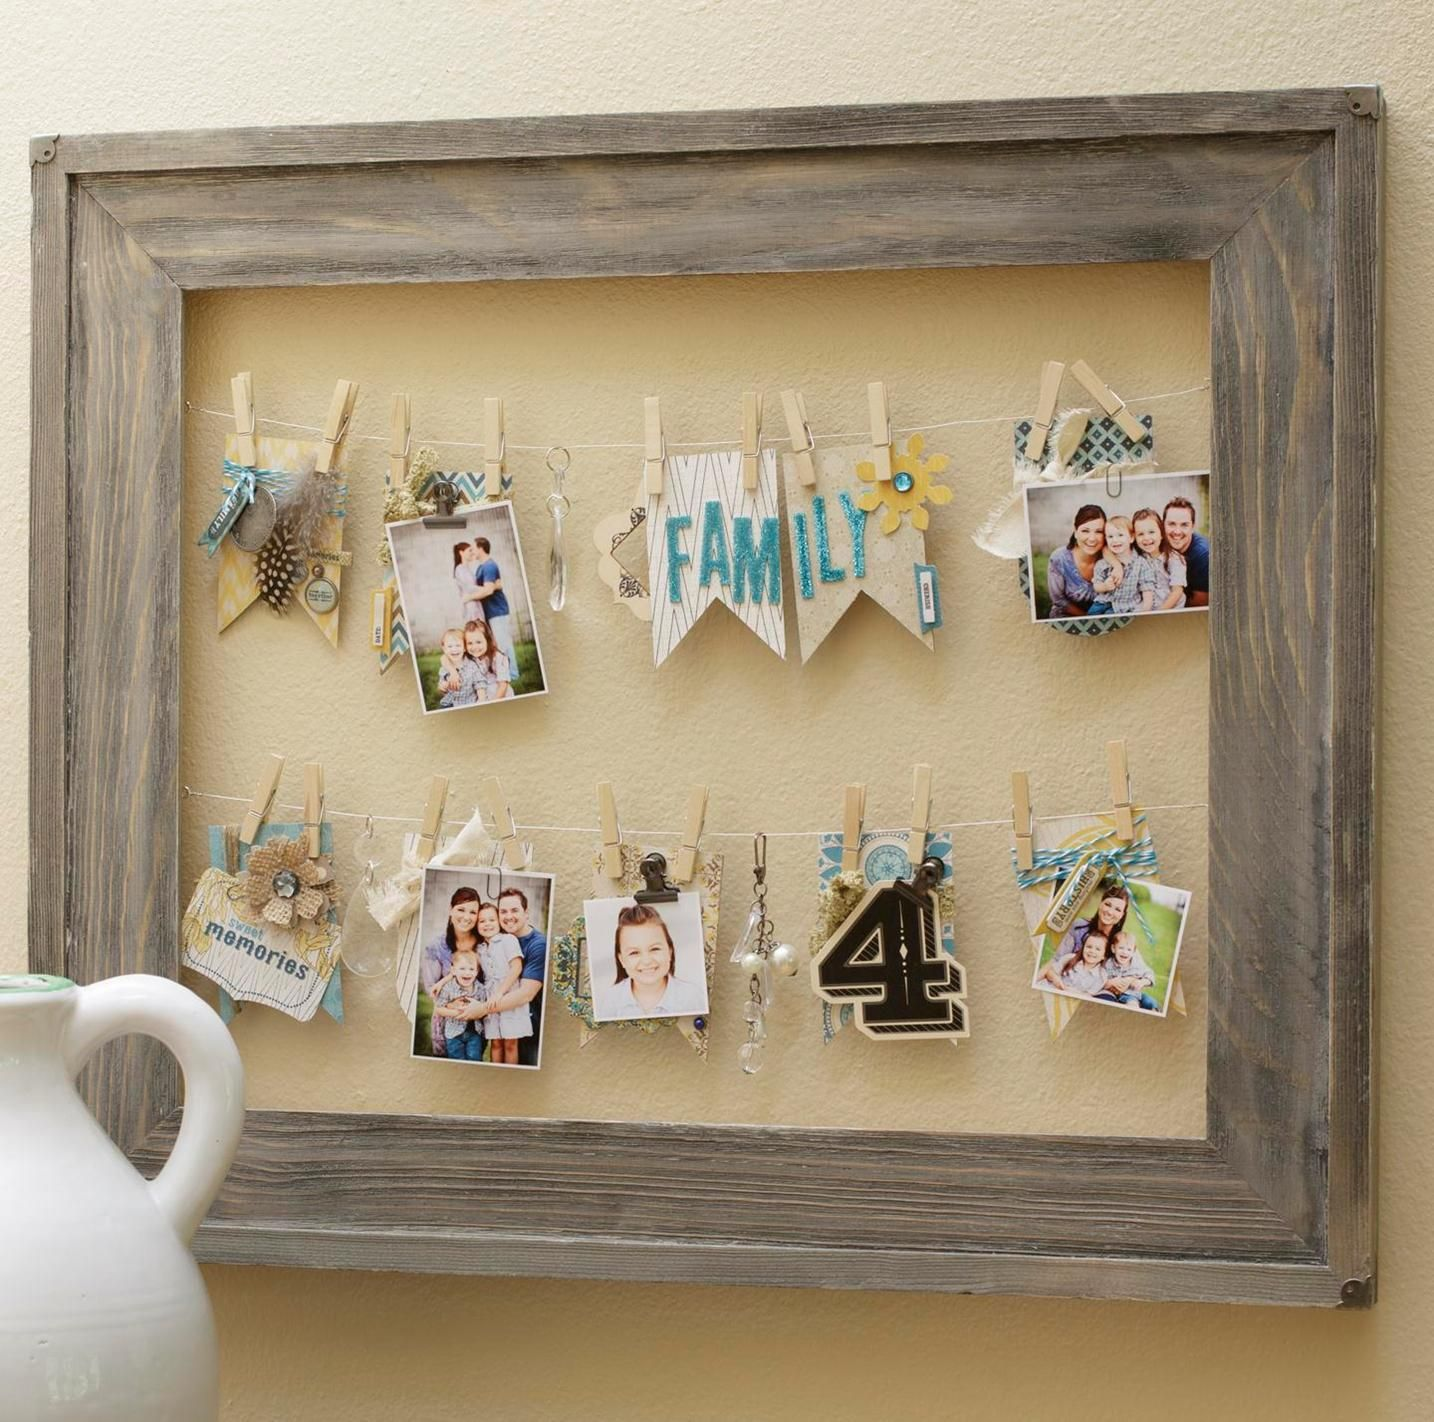 31 Rustic Diy Home Decor Projects: Barnwood Frame Home Decor Created By Sarah Owens. Inspired